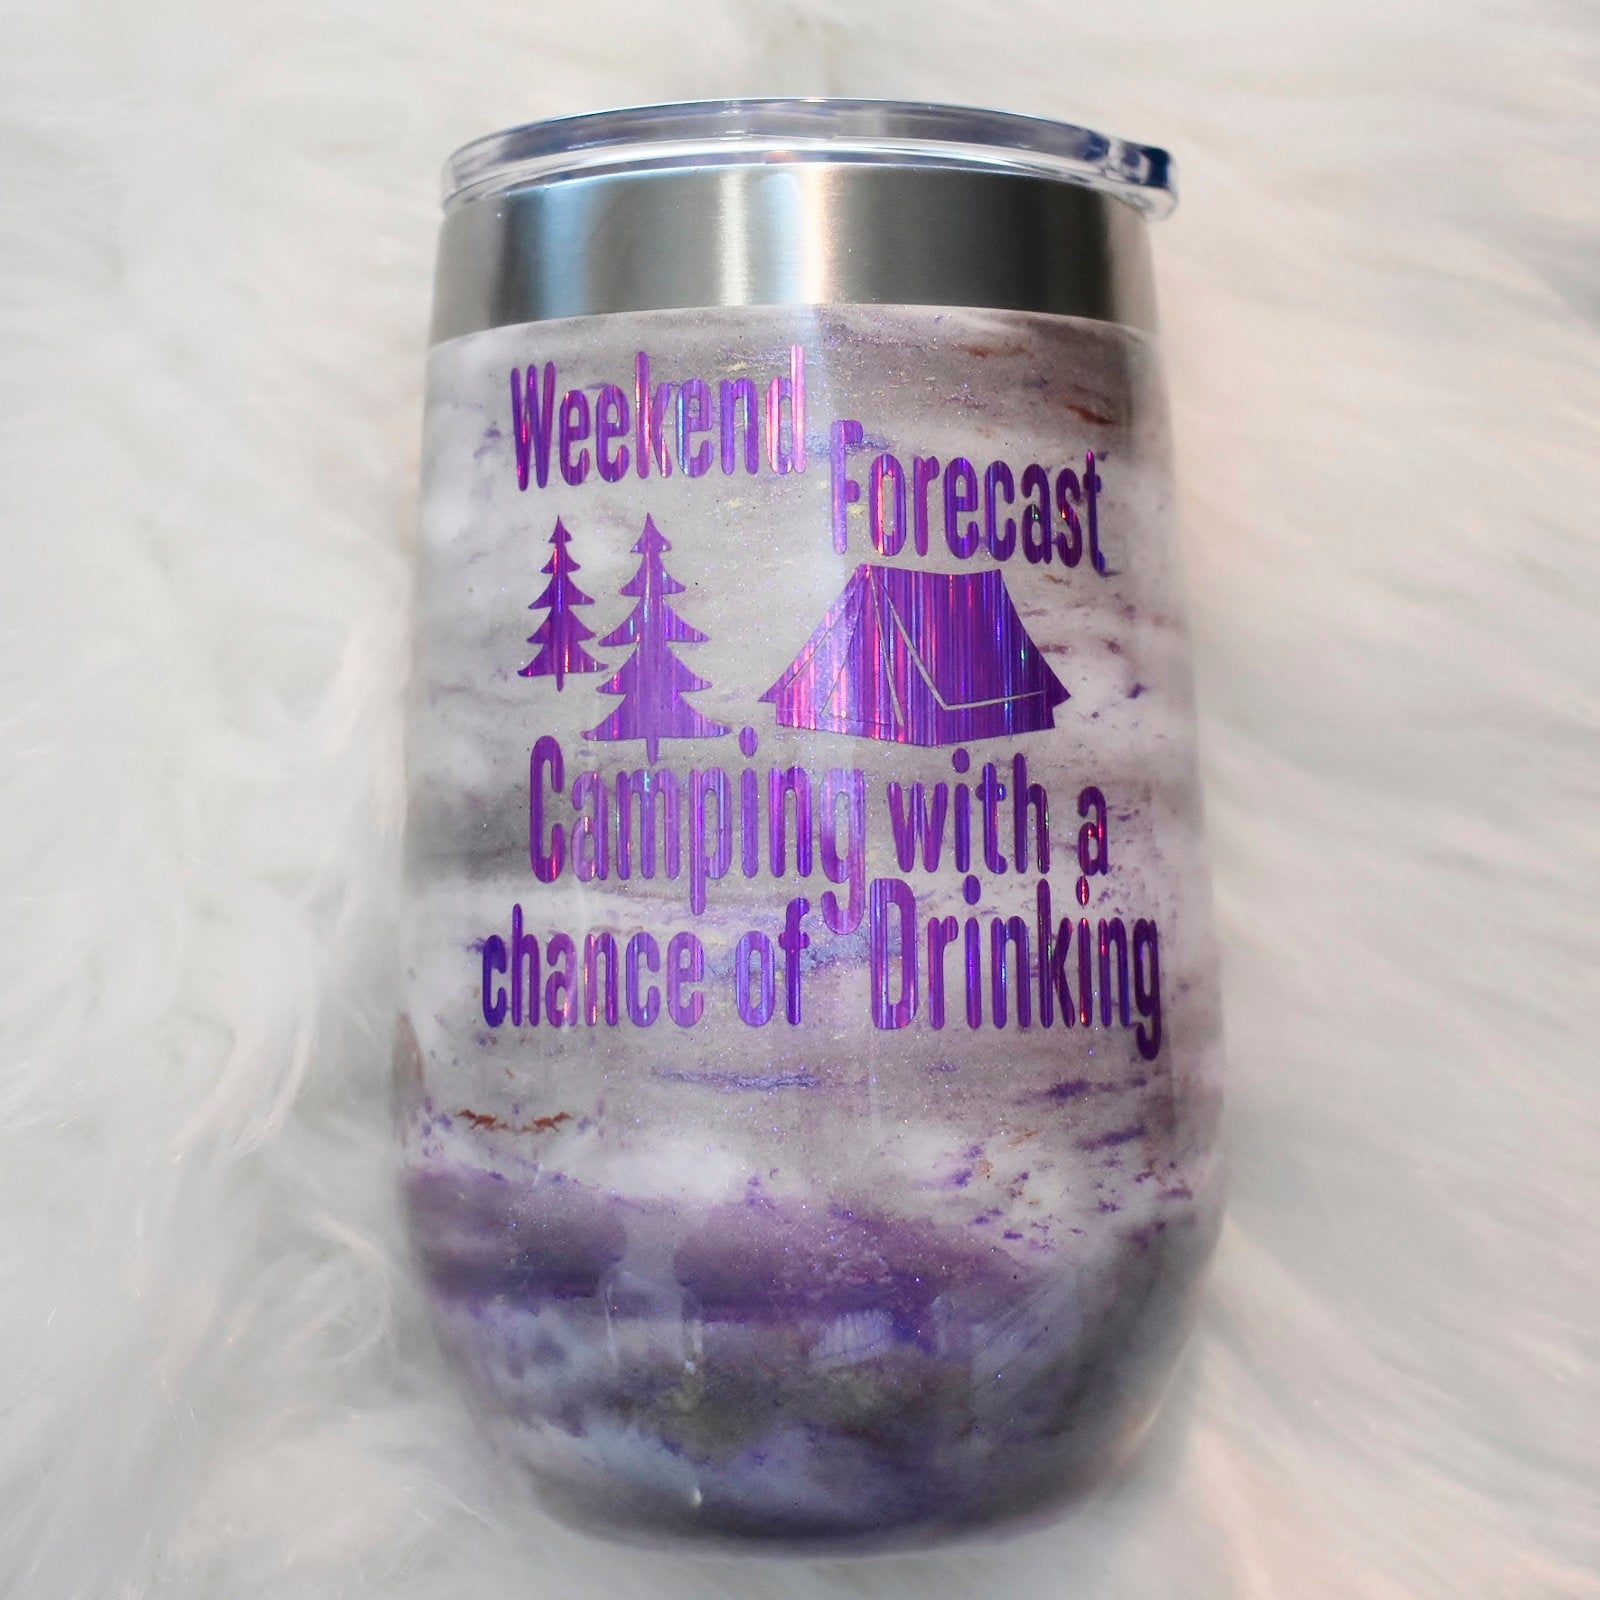 Weekend Forecast Camping glitter mica 16 oz stainless steel wine glass | Camper Gift | Glamper | Wine Lover | Camping Fun | Birthday Wine